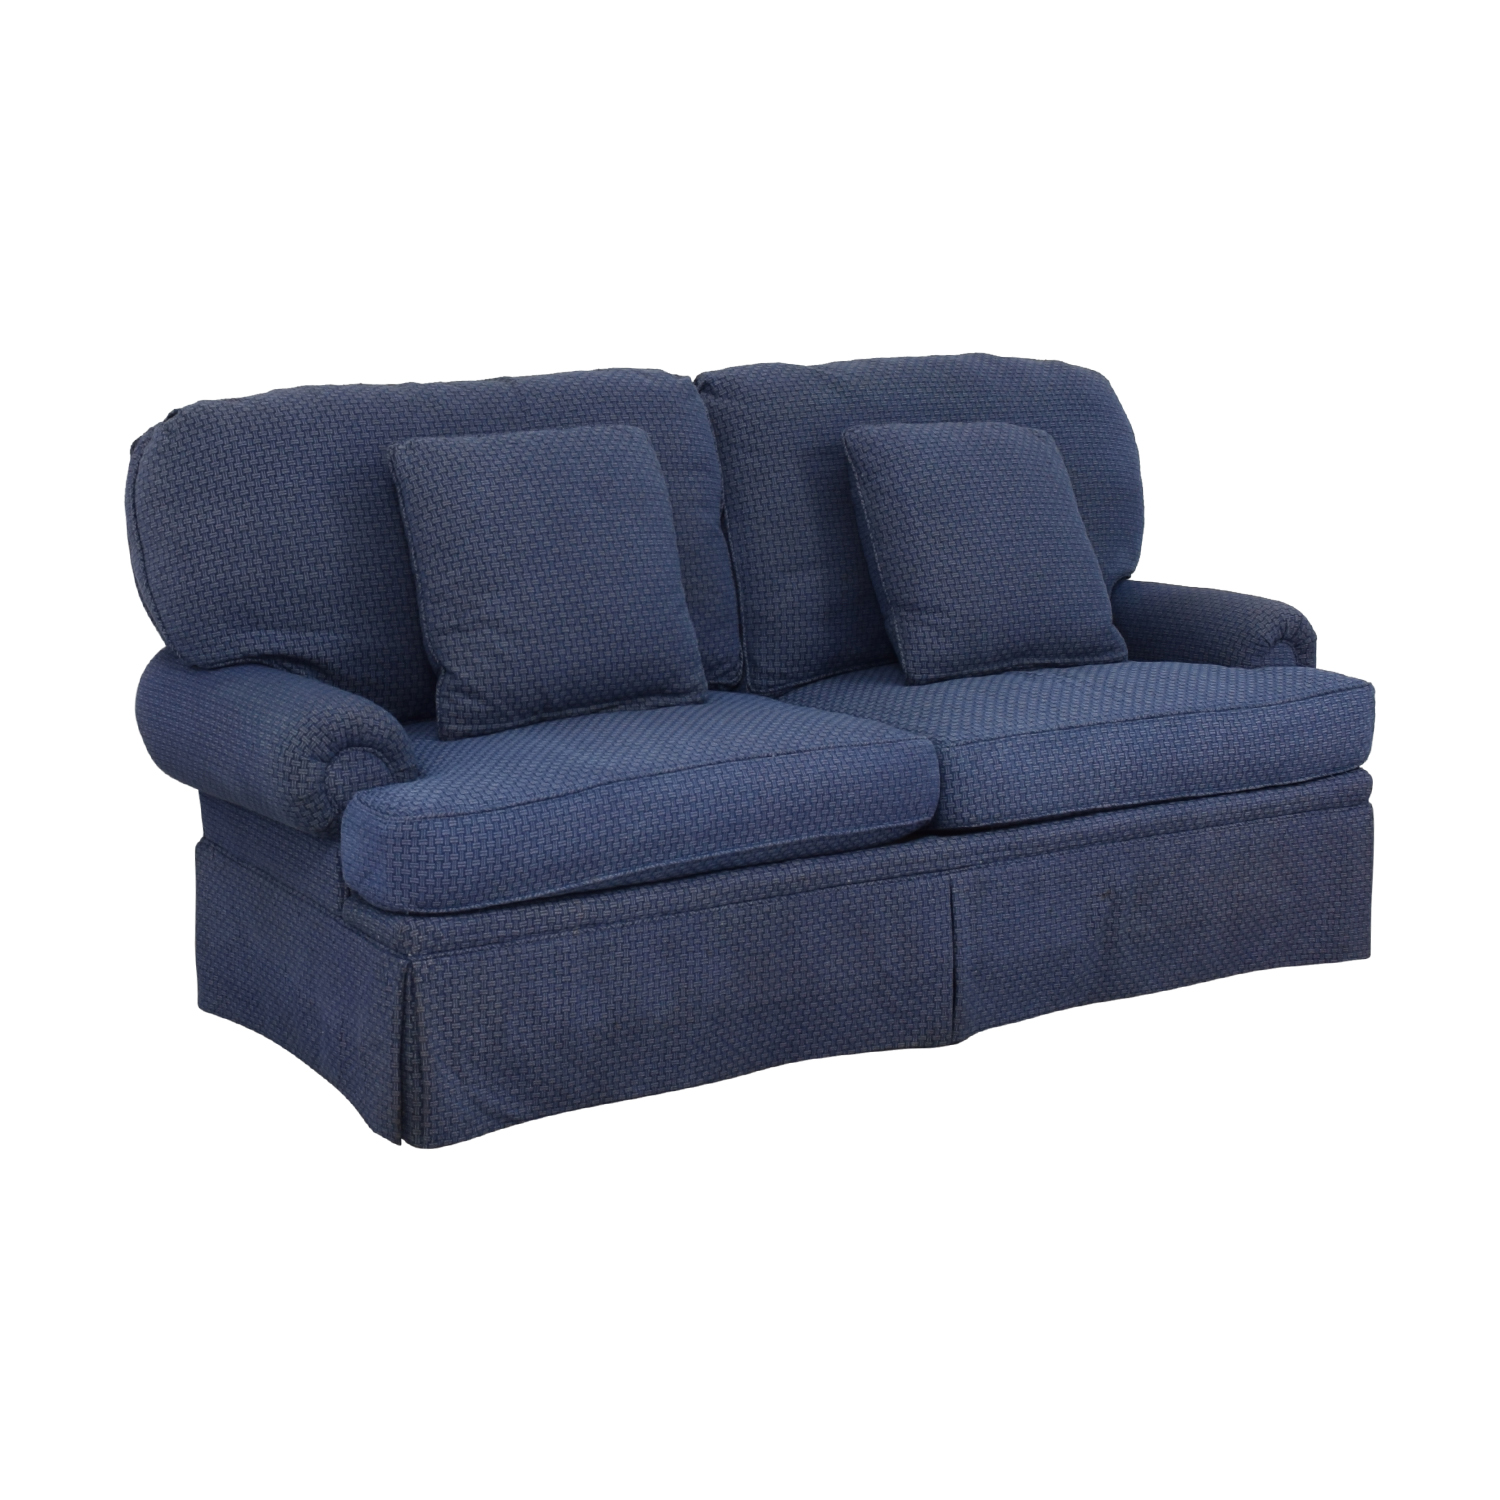 Calico Calico Classic Home Recessed Panel Arm Blue Down-Filled Sofa discount